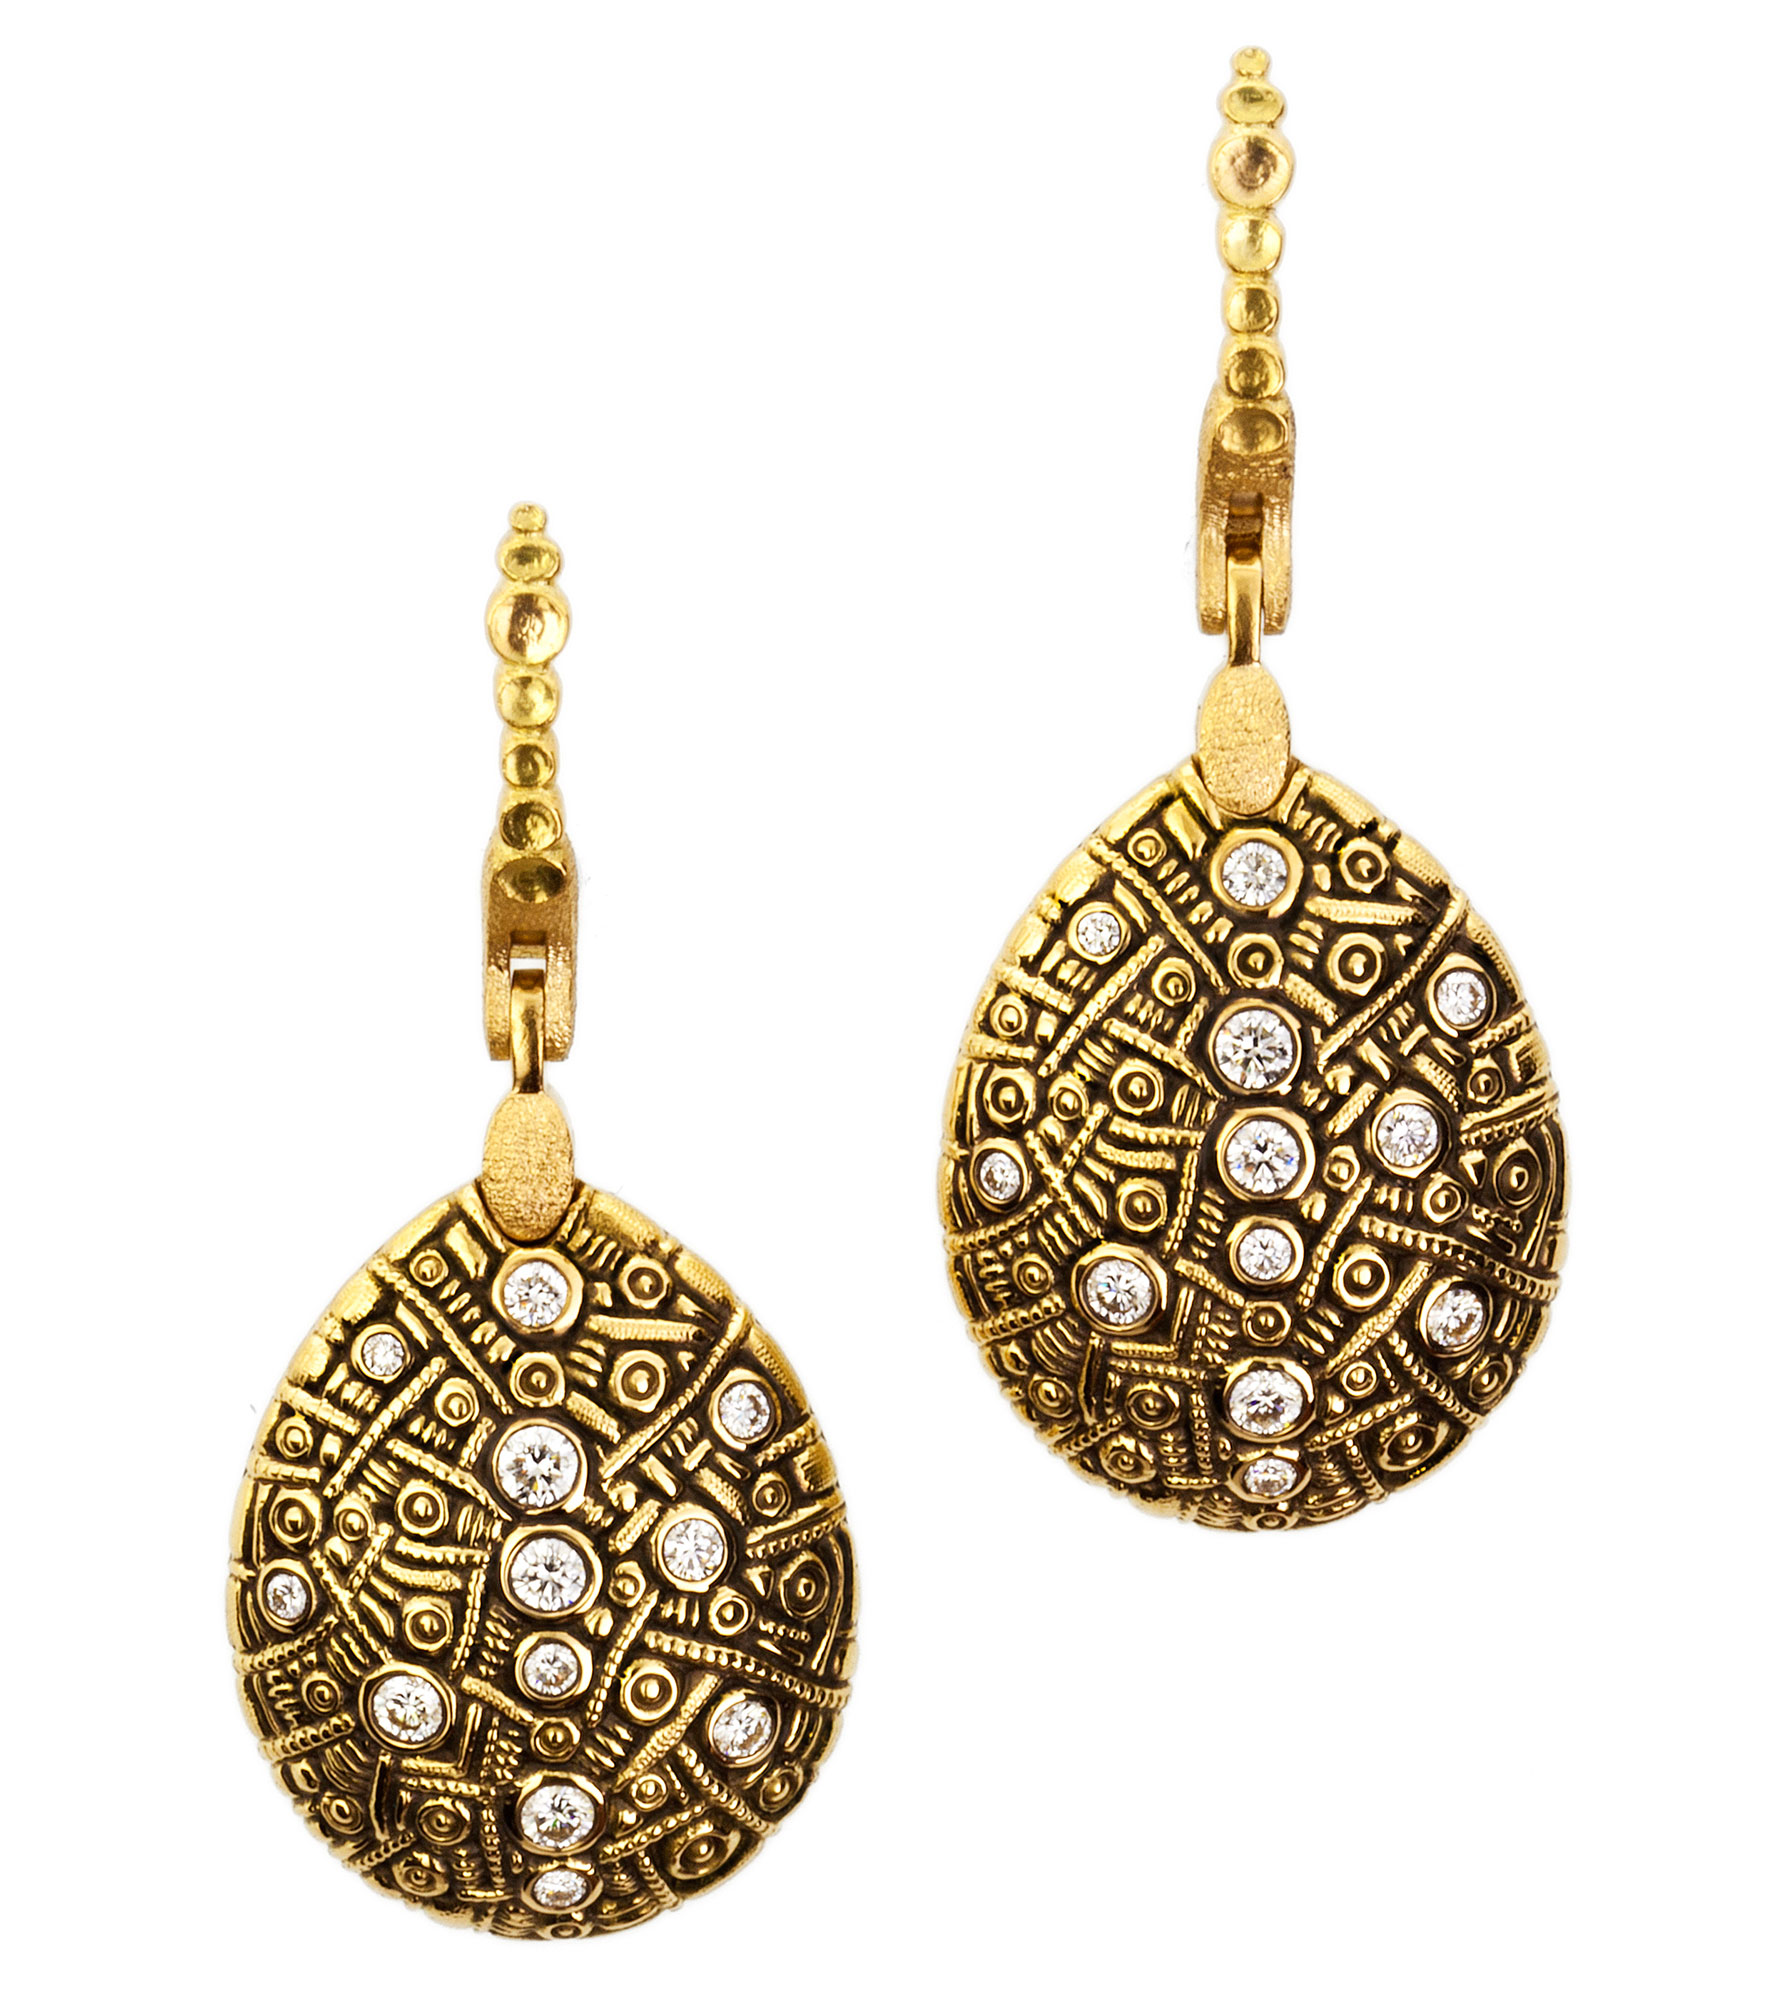 jewellery product earrings lens shop the gold carat abby earrrings handmade mosseri garnered garnet